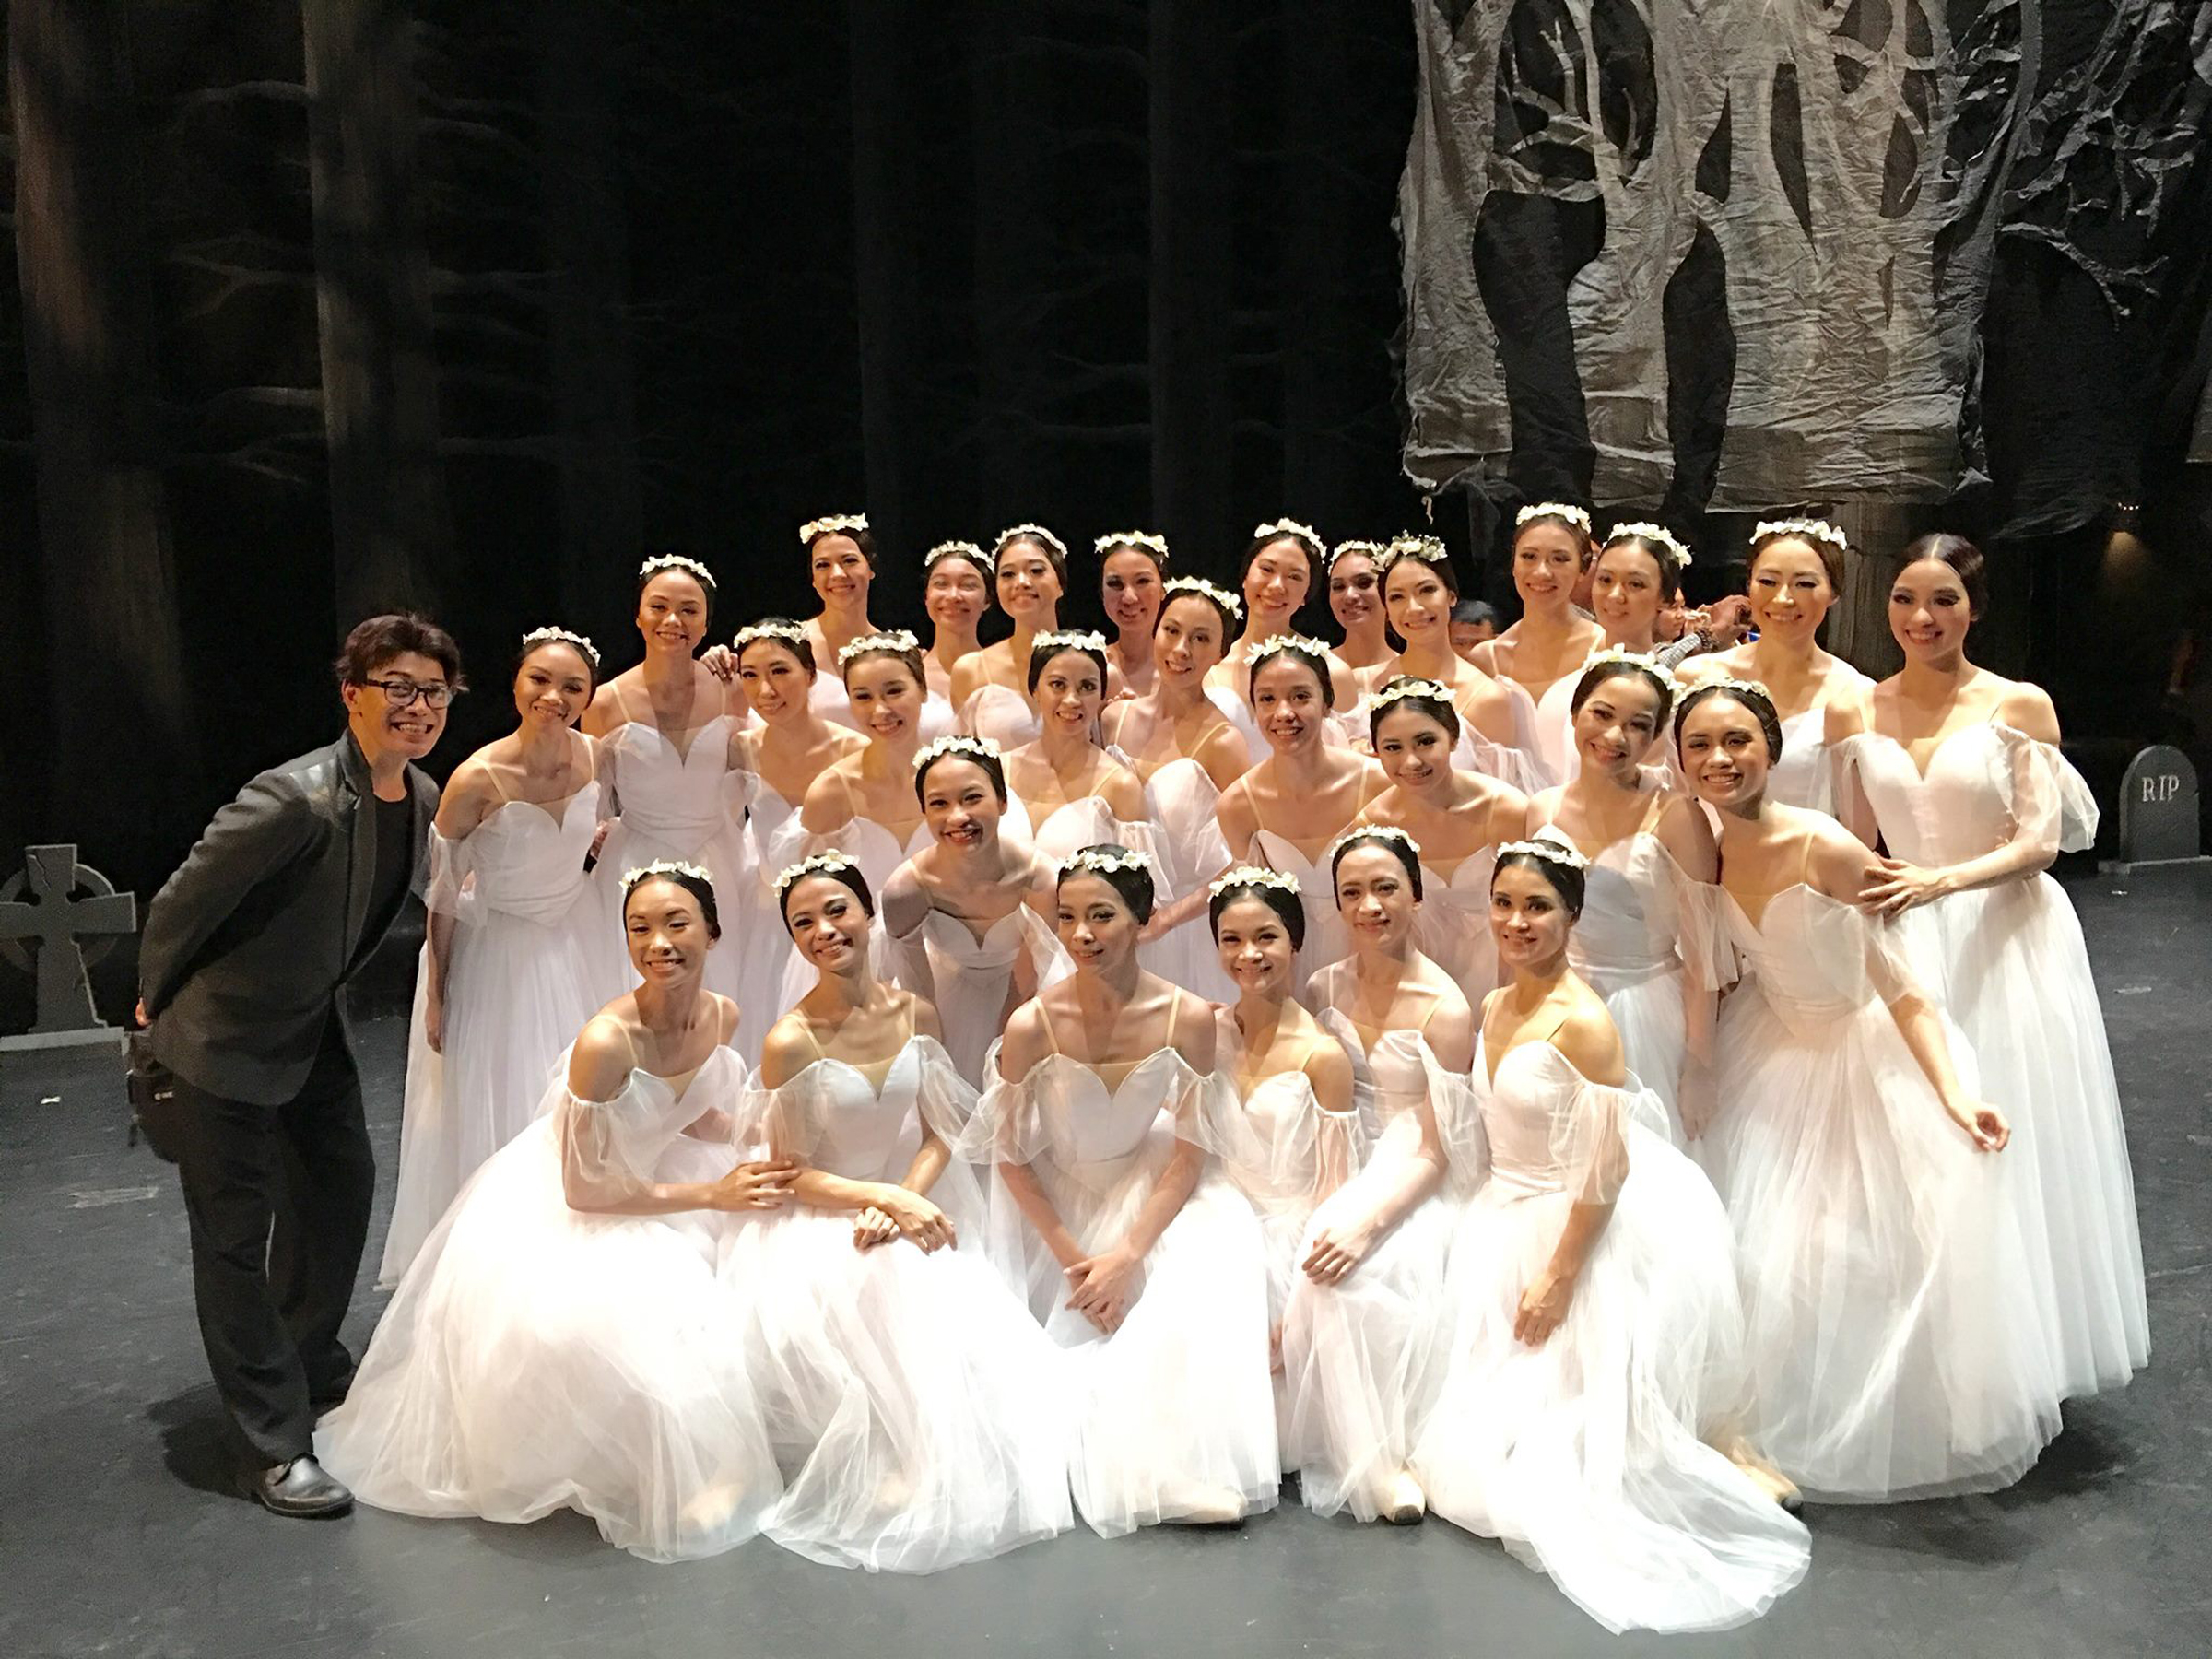 BM co-artistic director Osias Barroso praised the Wilis of    Giselle    during the    Dance.MNL    festival in 2016 for their outstanding corps work, among them Sofie (fifth girl, second row). Photo from Osias Barroso's Facebook page